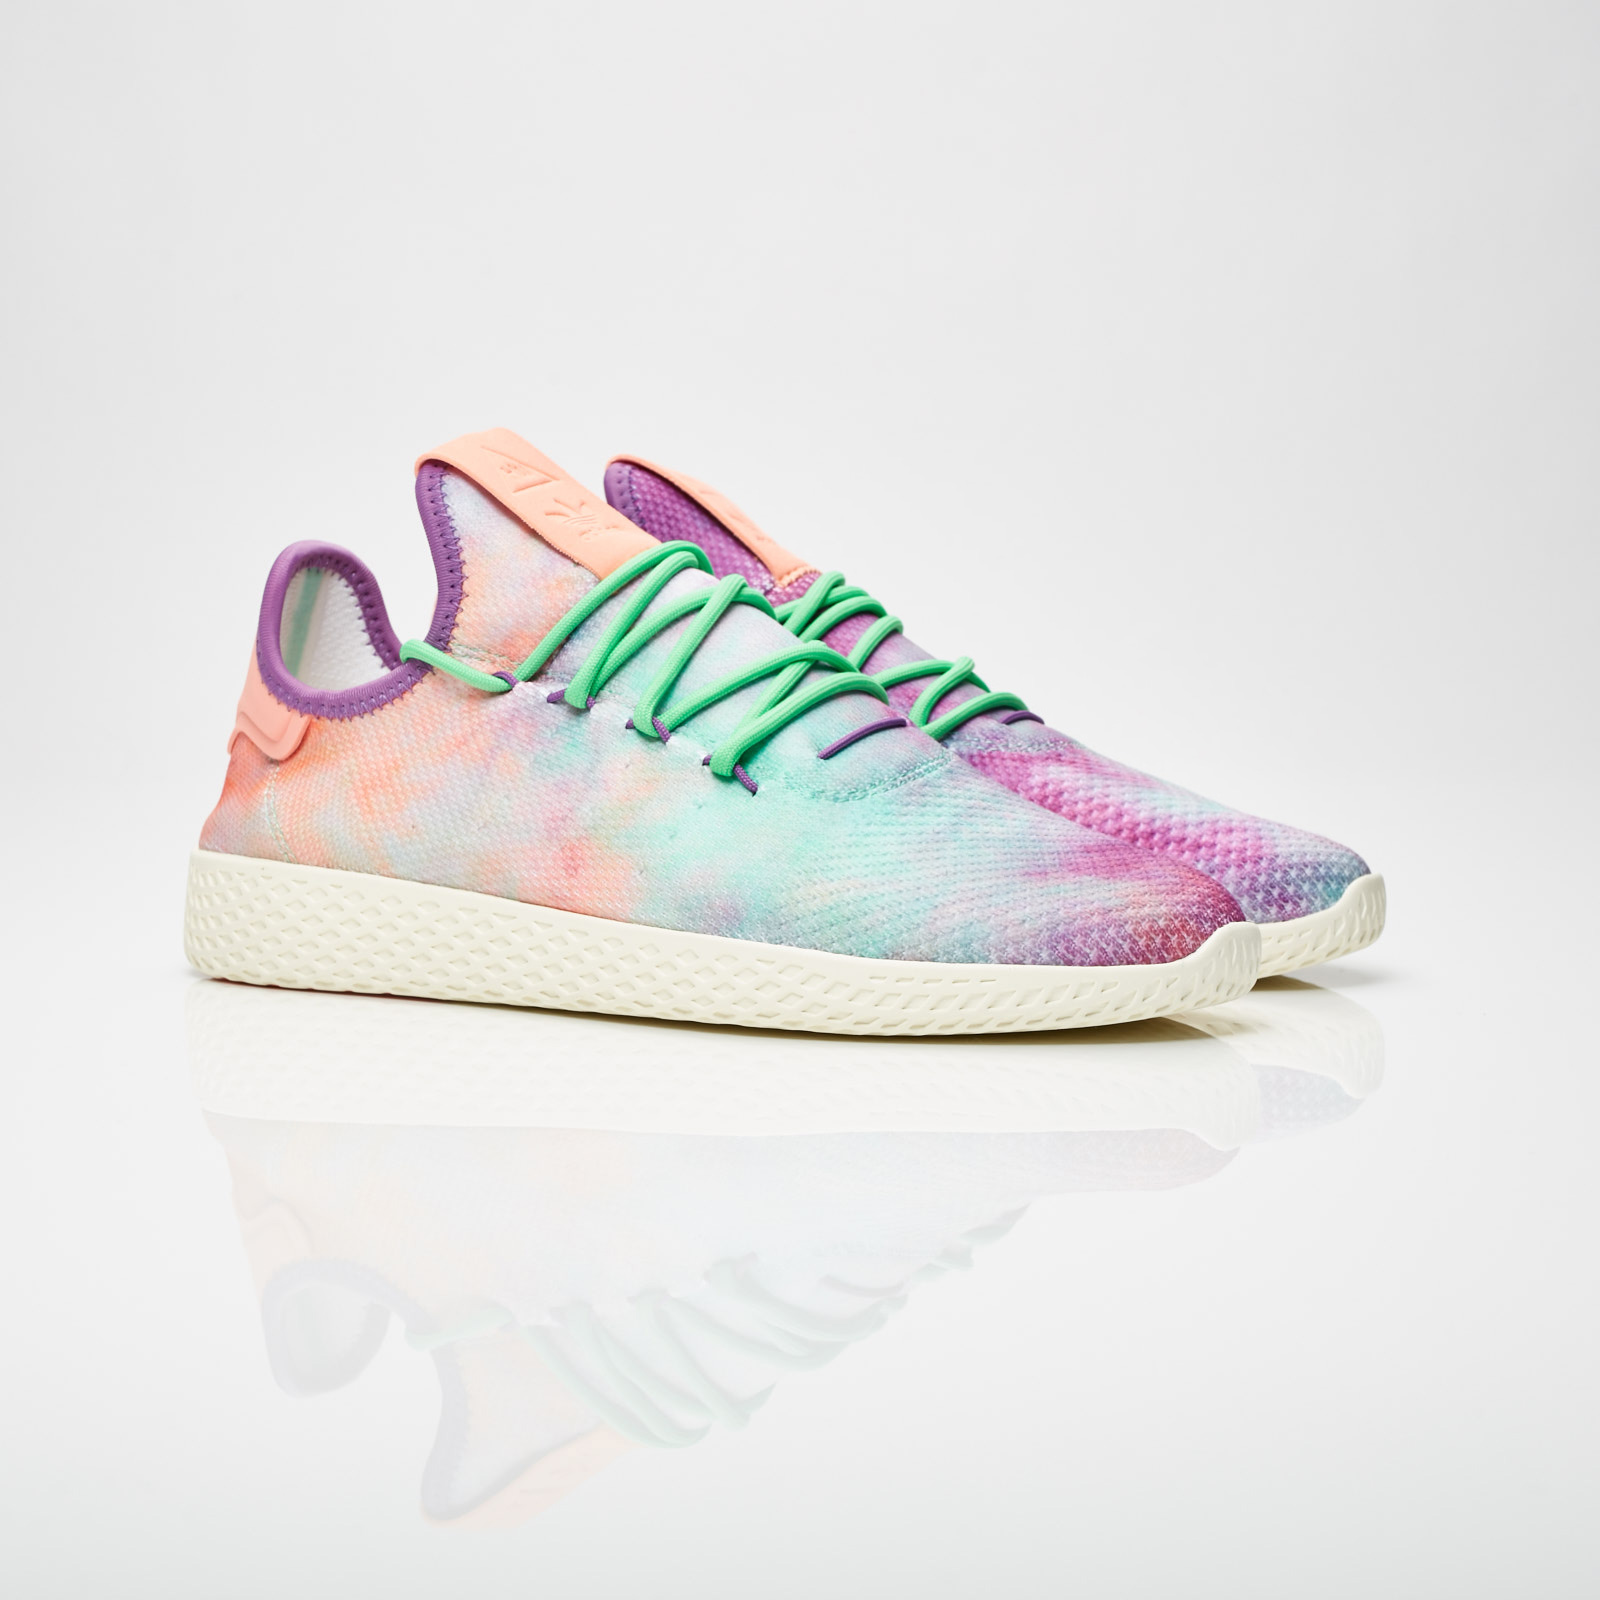 fa60c68d8 adidas Pharrell Williams HU Holi Tennis Hu MC - Ac7366 ...